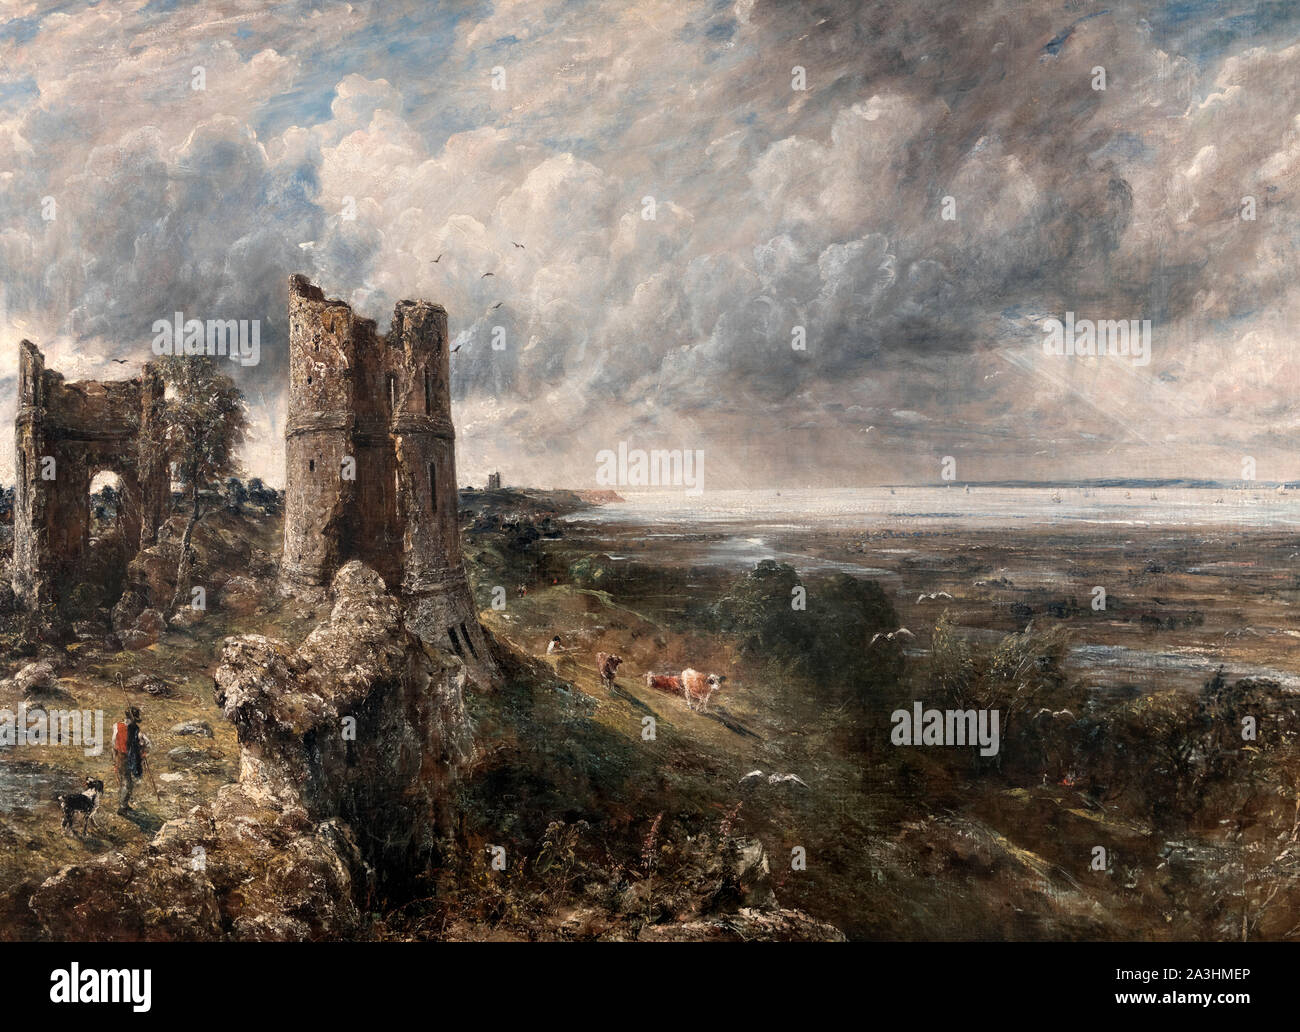 Hadleigh Castle - The Mouth of the Thames the Morning after a Stormy Night by John Constable (1776-1837), oil on canvas, c.1826 Stock Photo